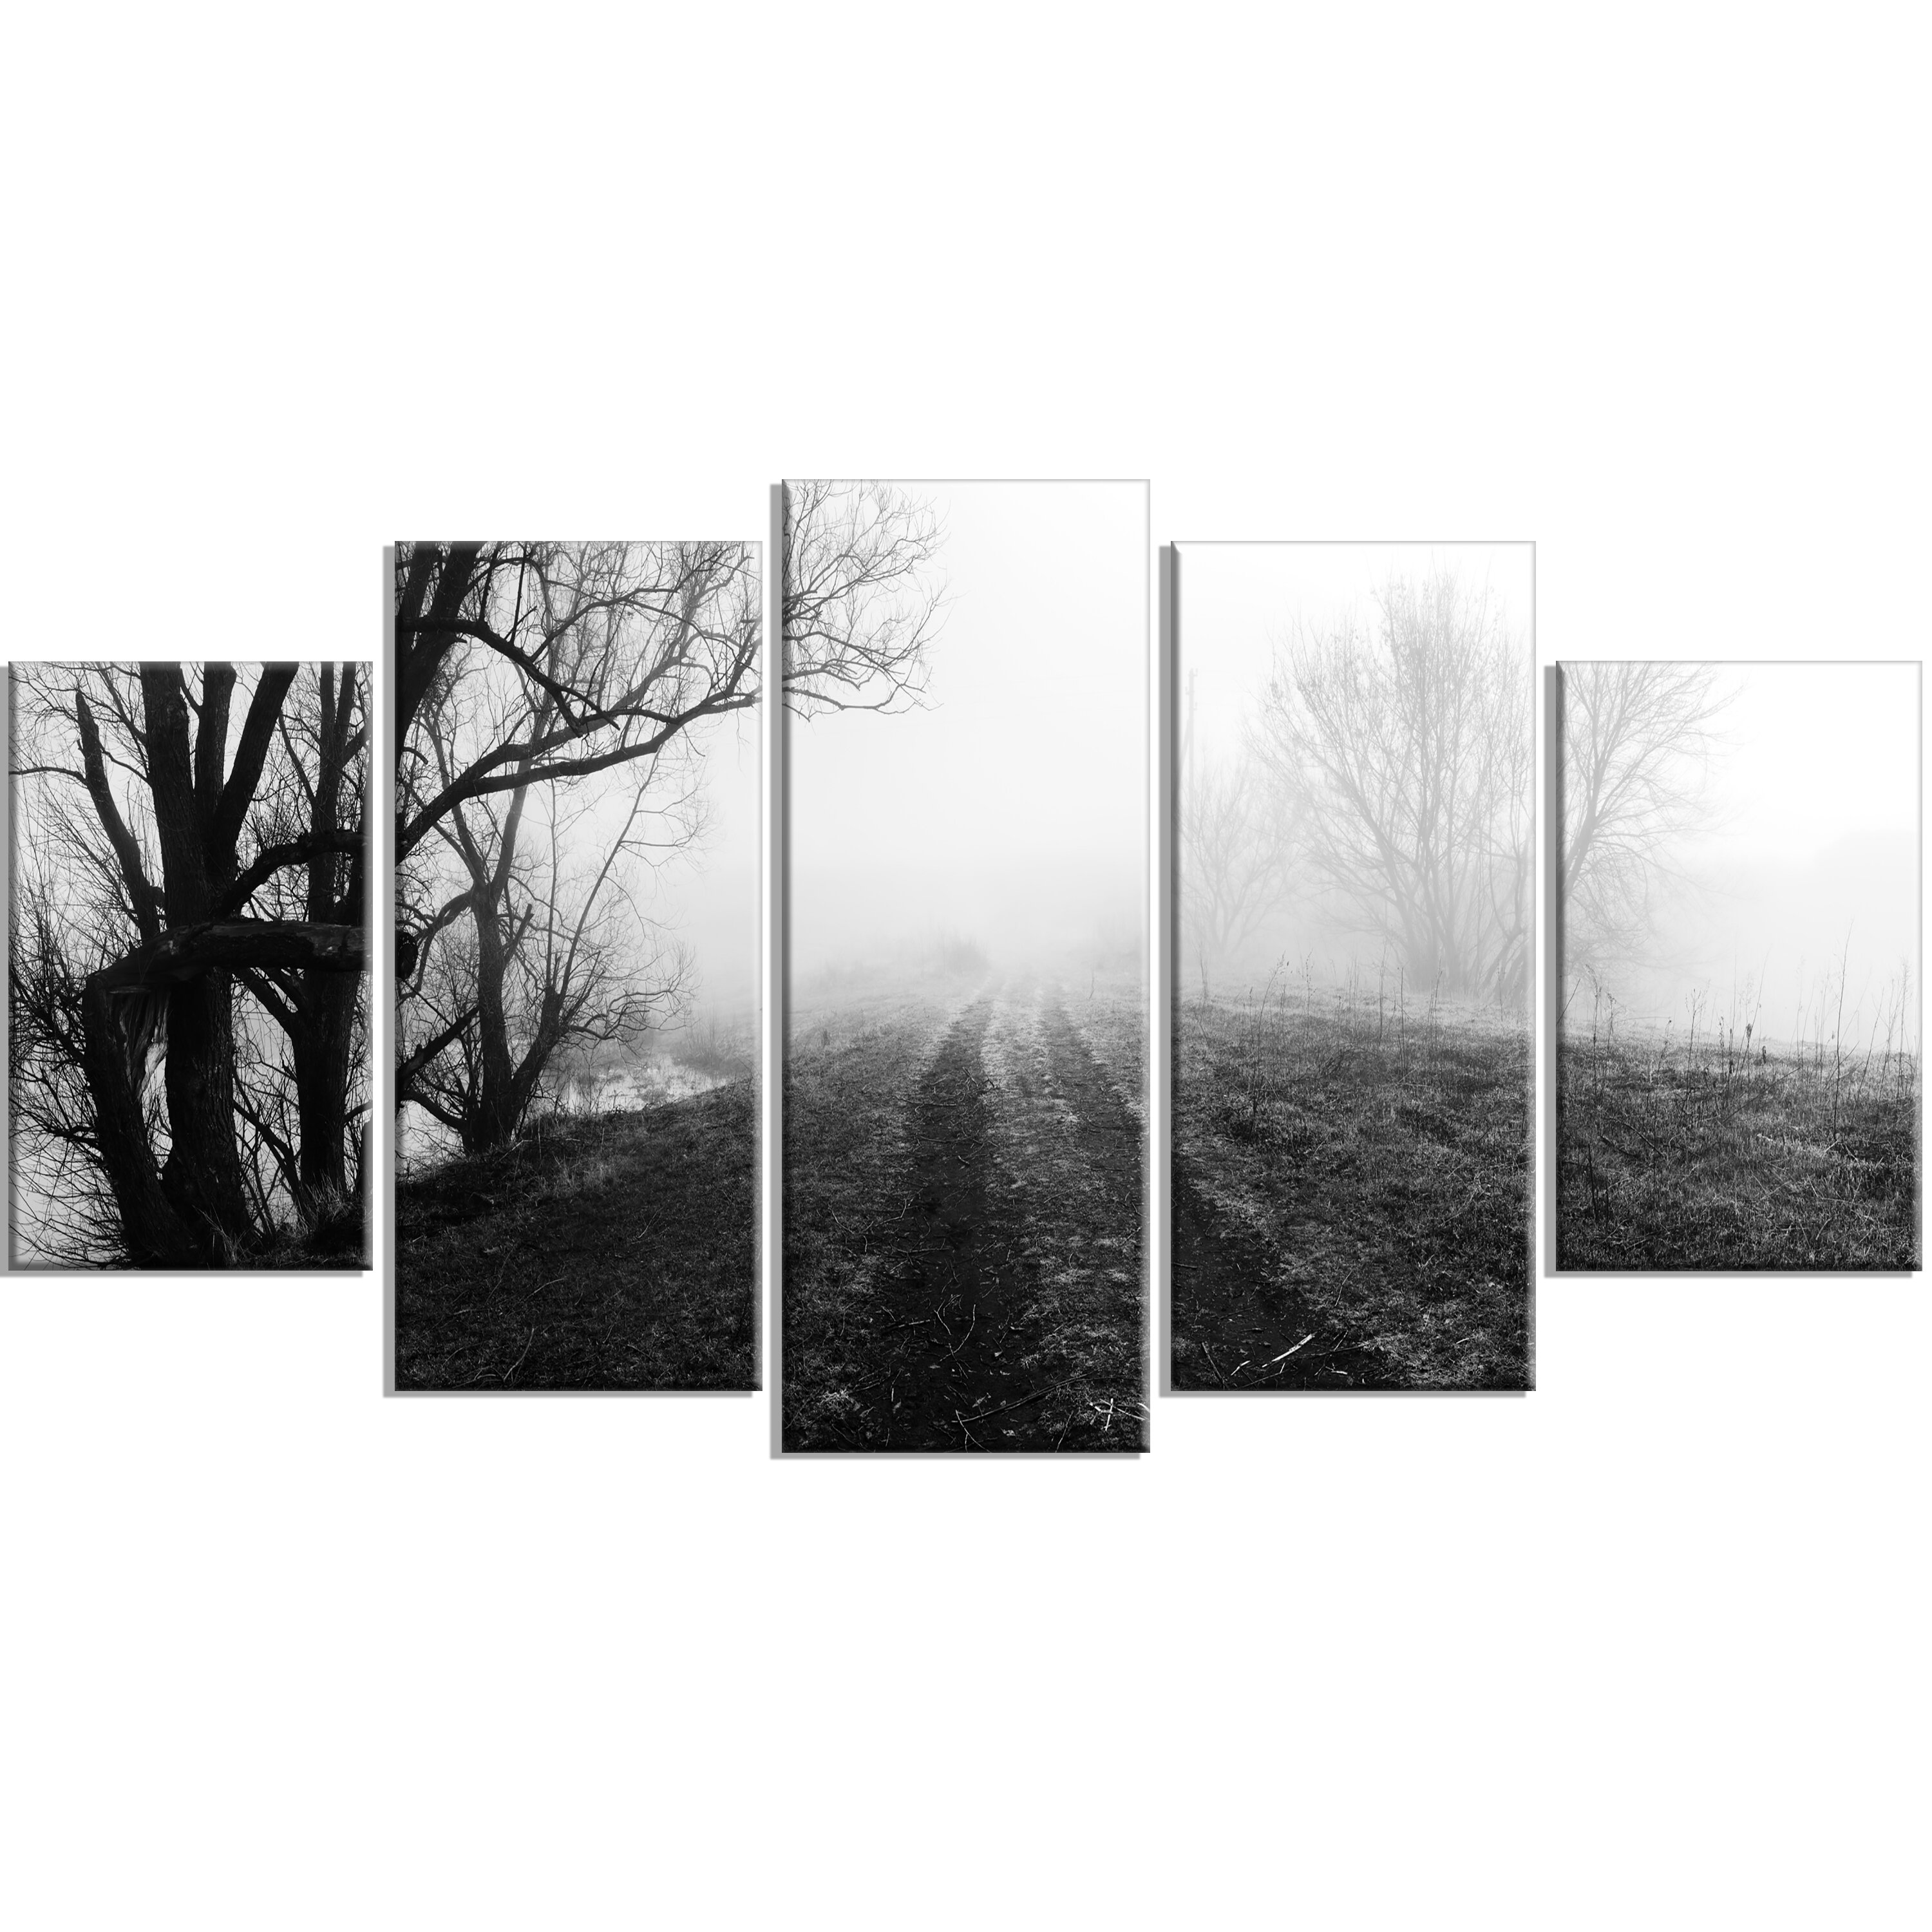 Designart Black And White Misty Landscape Panorama 5 Piece Photographic Print On Wrapped Canvas Set Wayfair